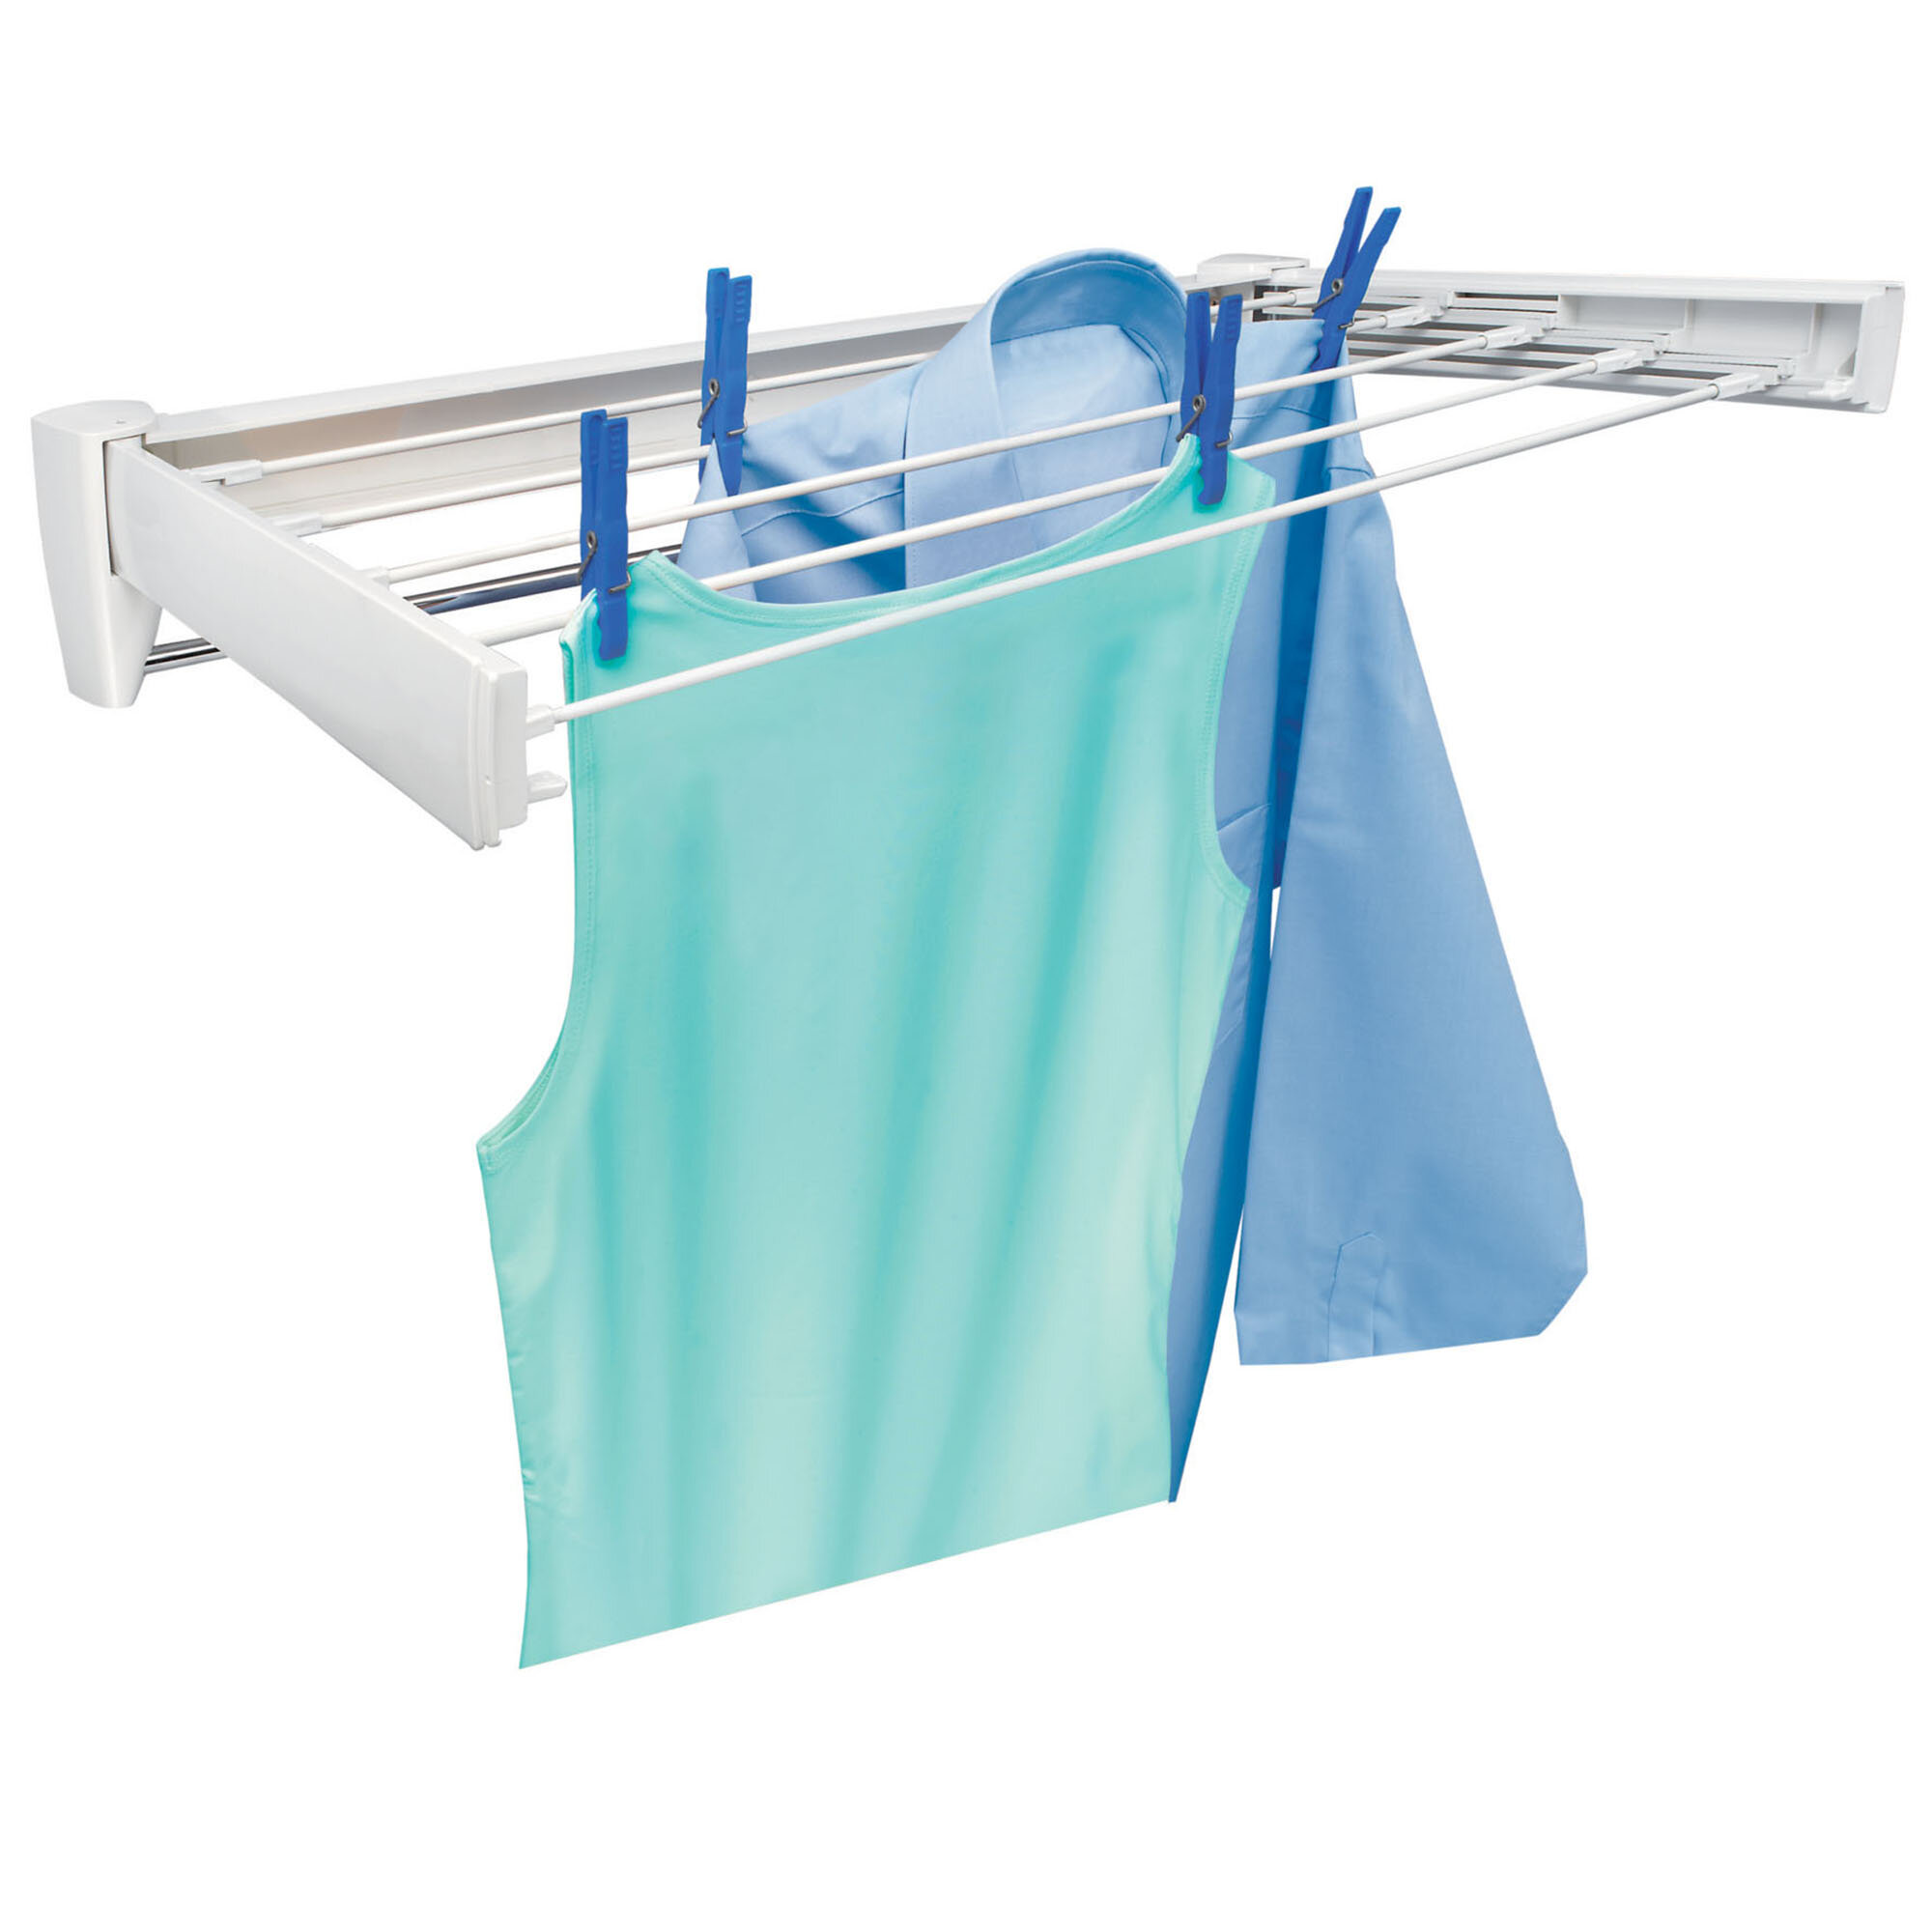 LEIFHEIT Telegant 70 Retractable Wall Mount Clothes Drying Rack with ...